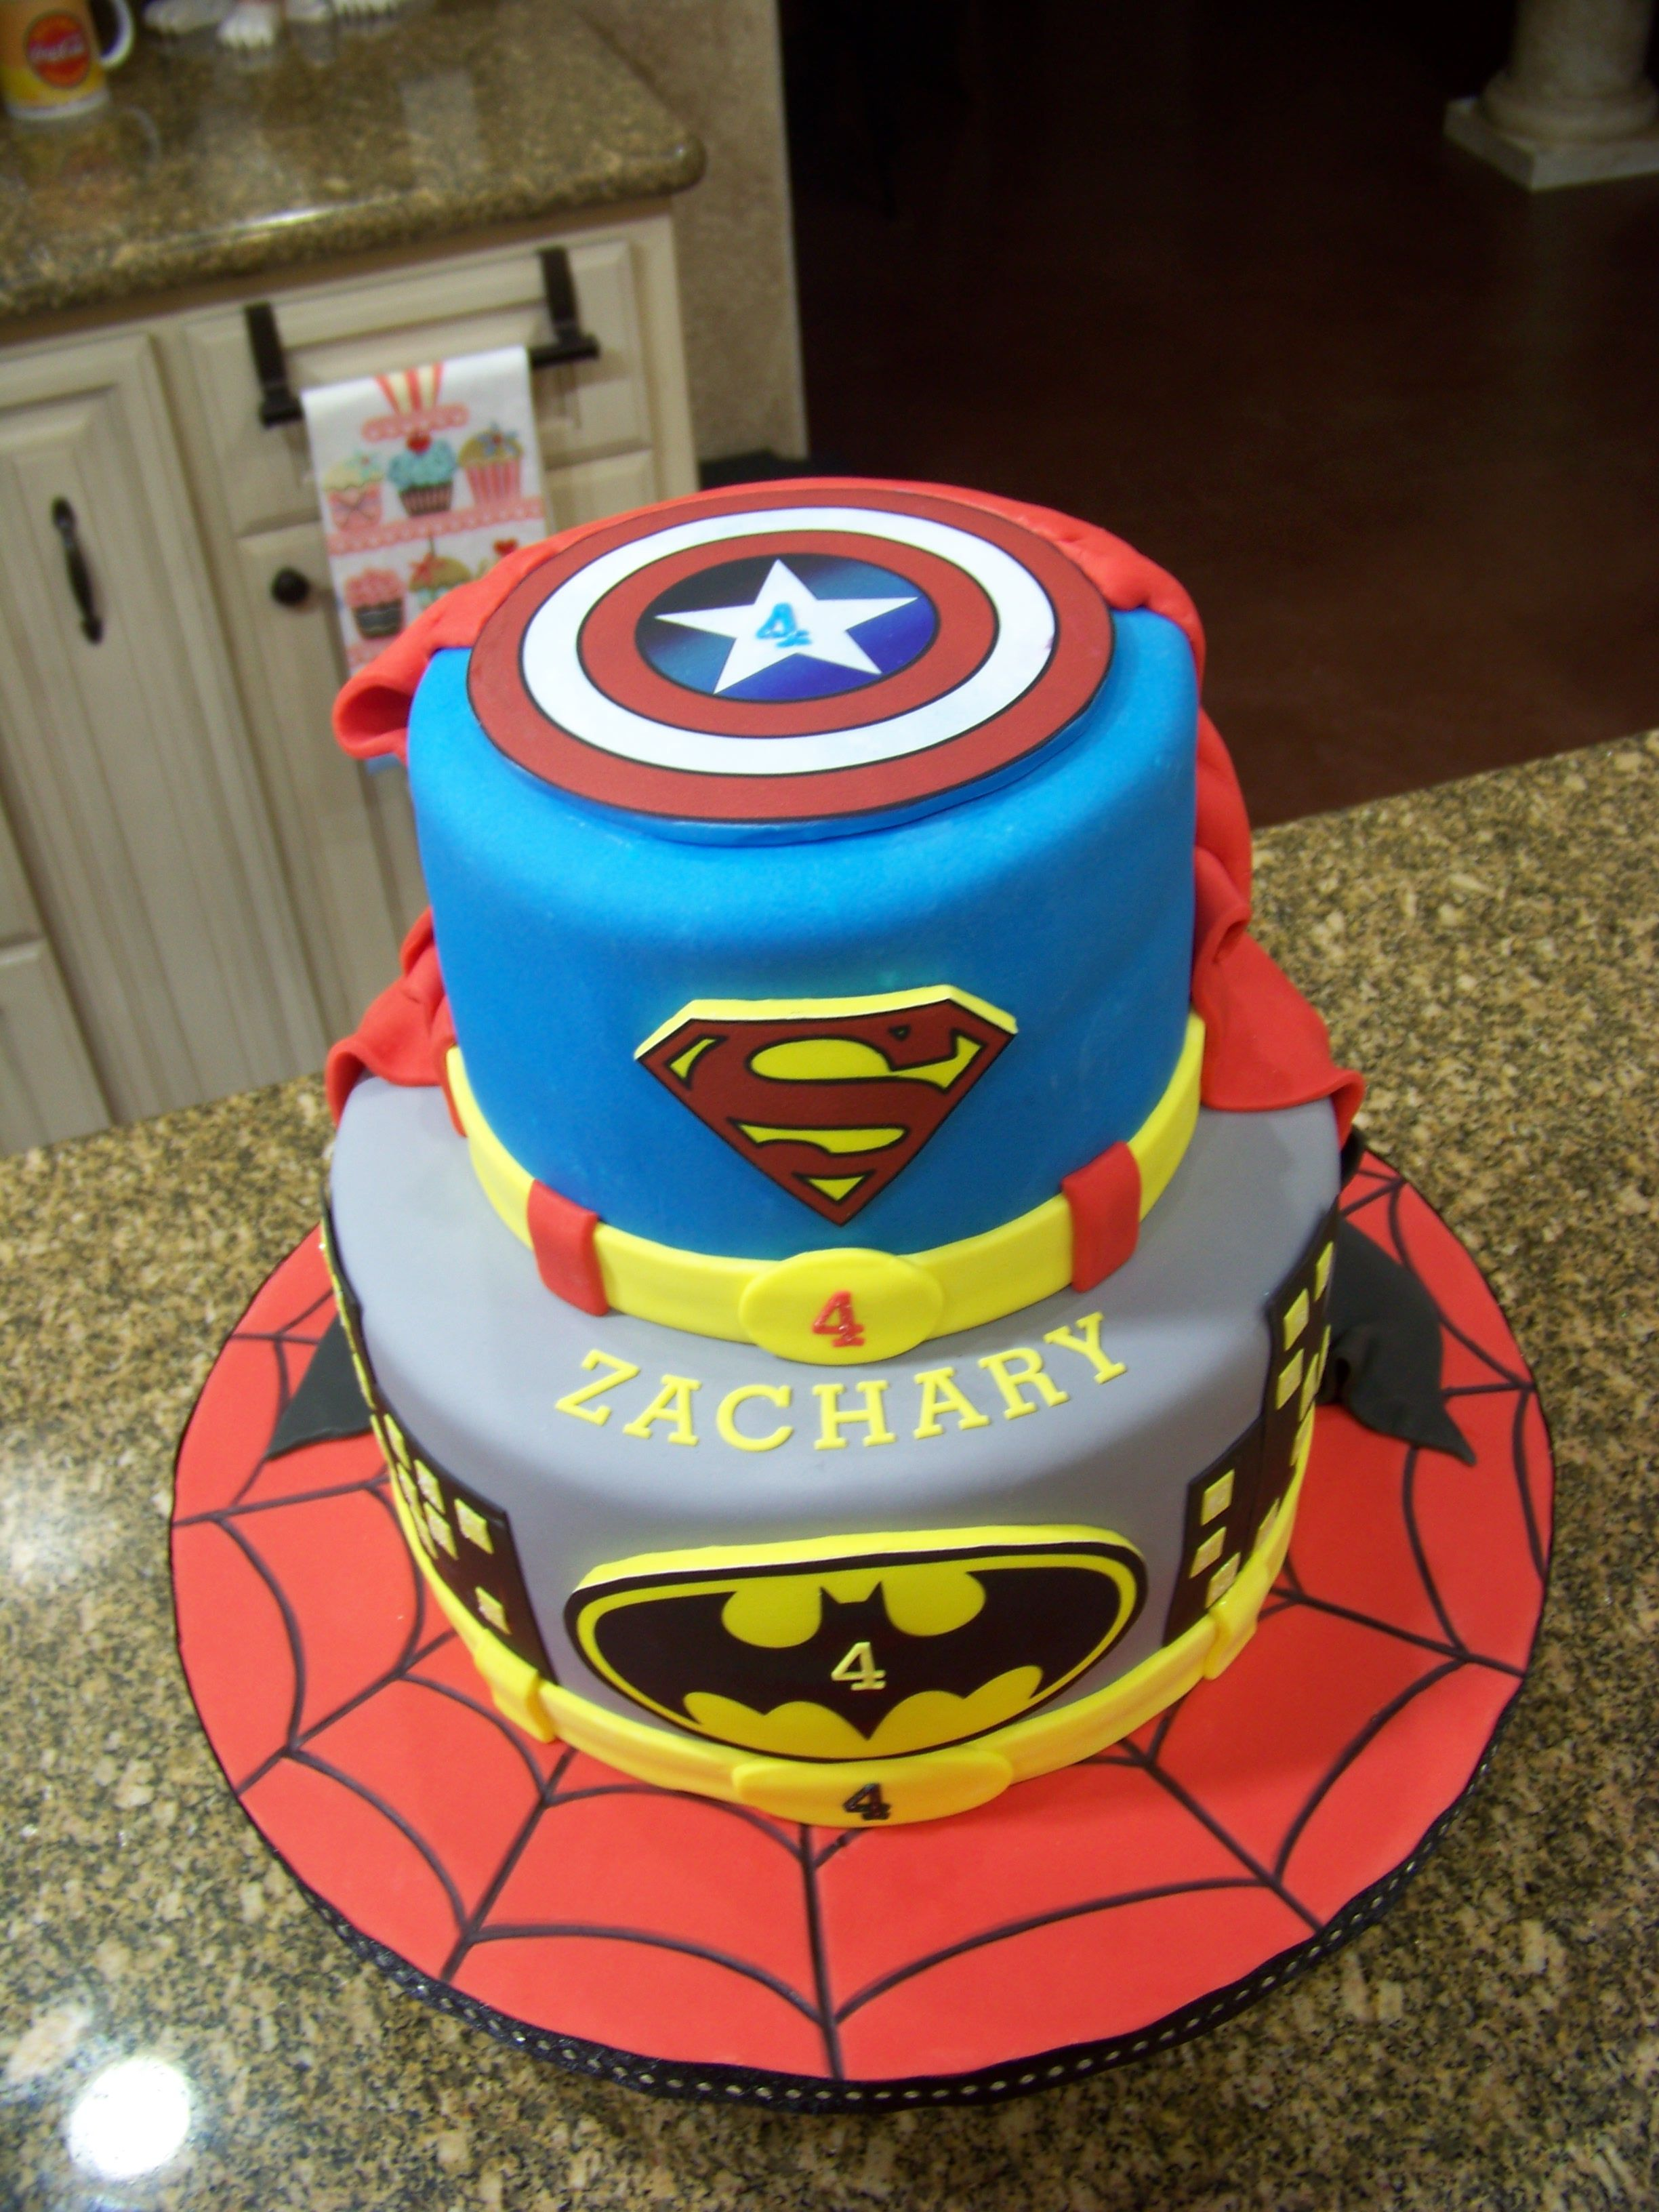 superhero birthday cake superhero birthday cakes | Superhero cake   Spiderman, Batman  superhero birthday cake